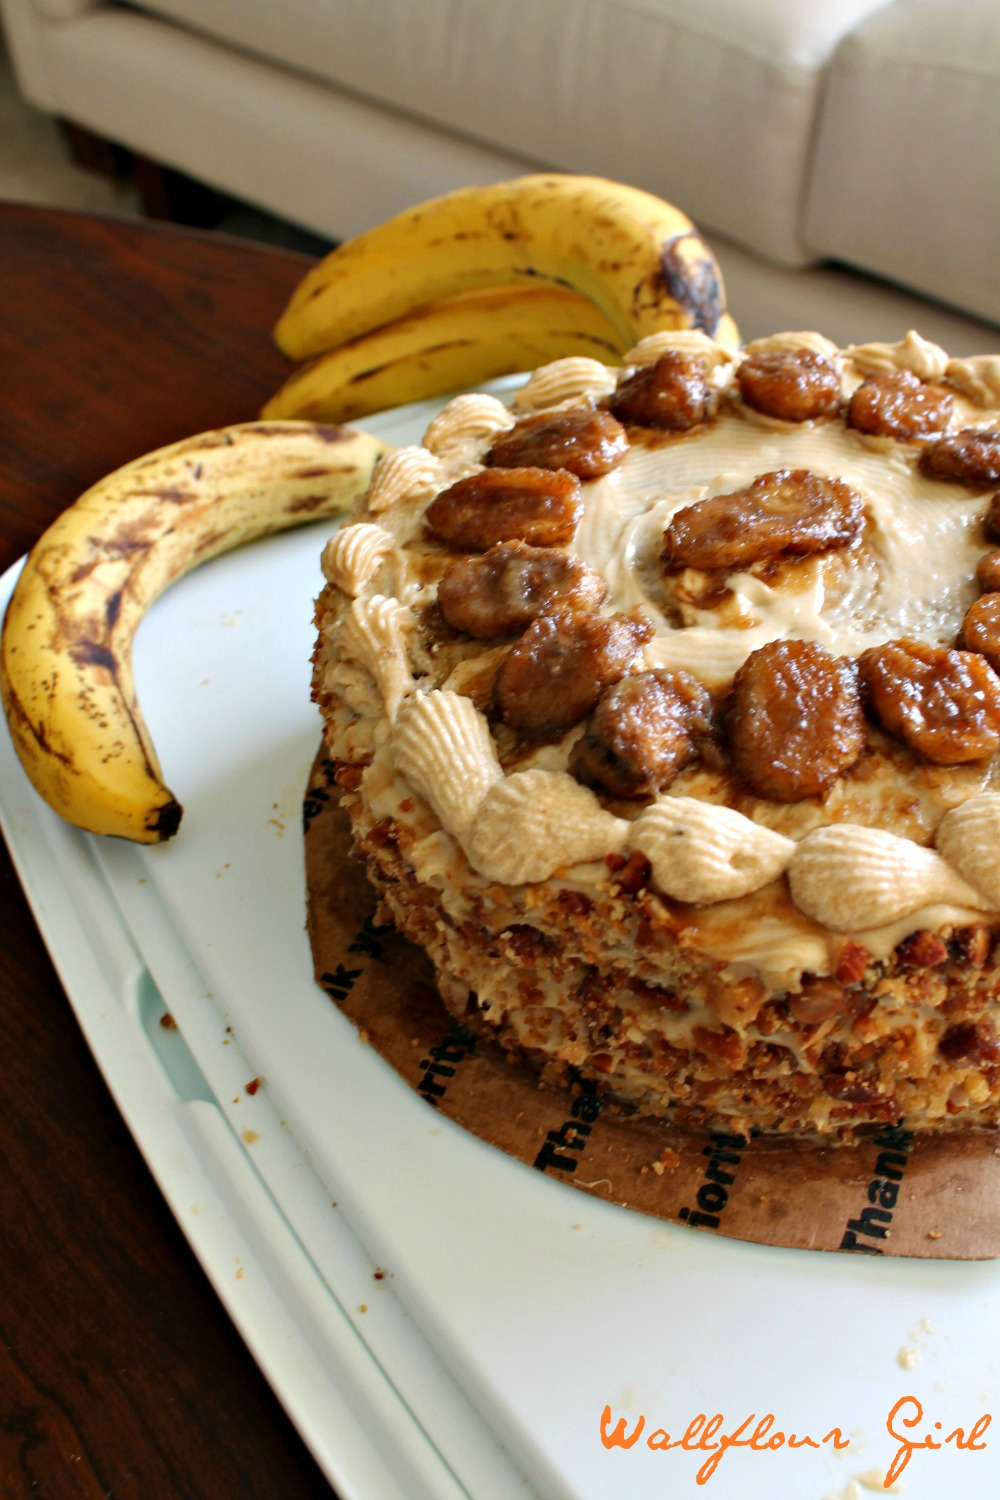 The Best Bananas Foster Toffee Cake 11--011514